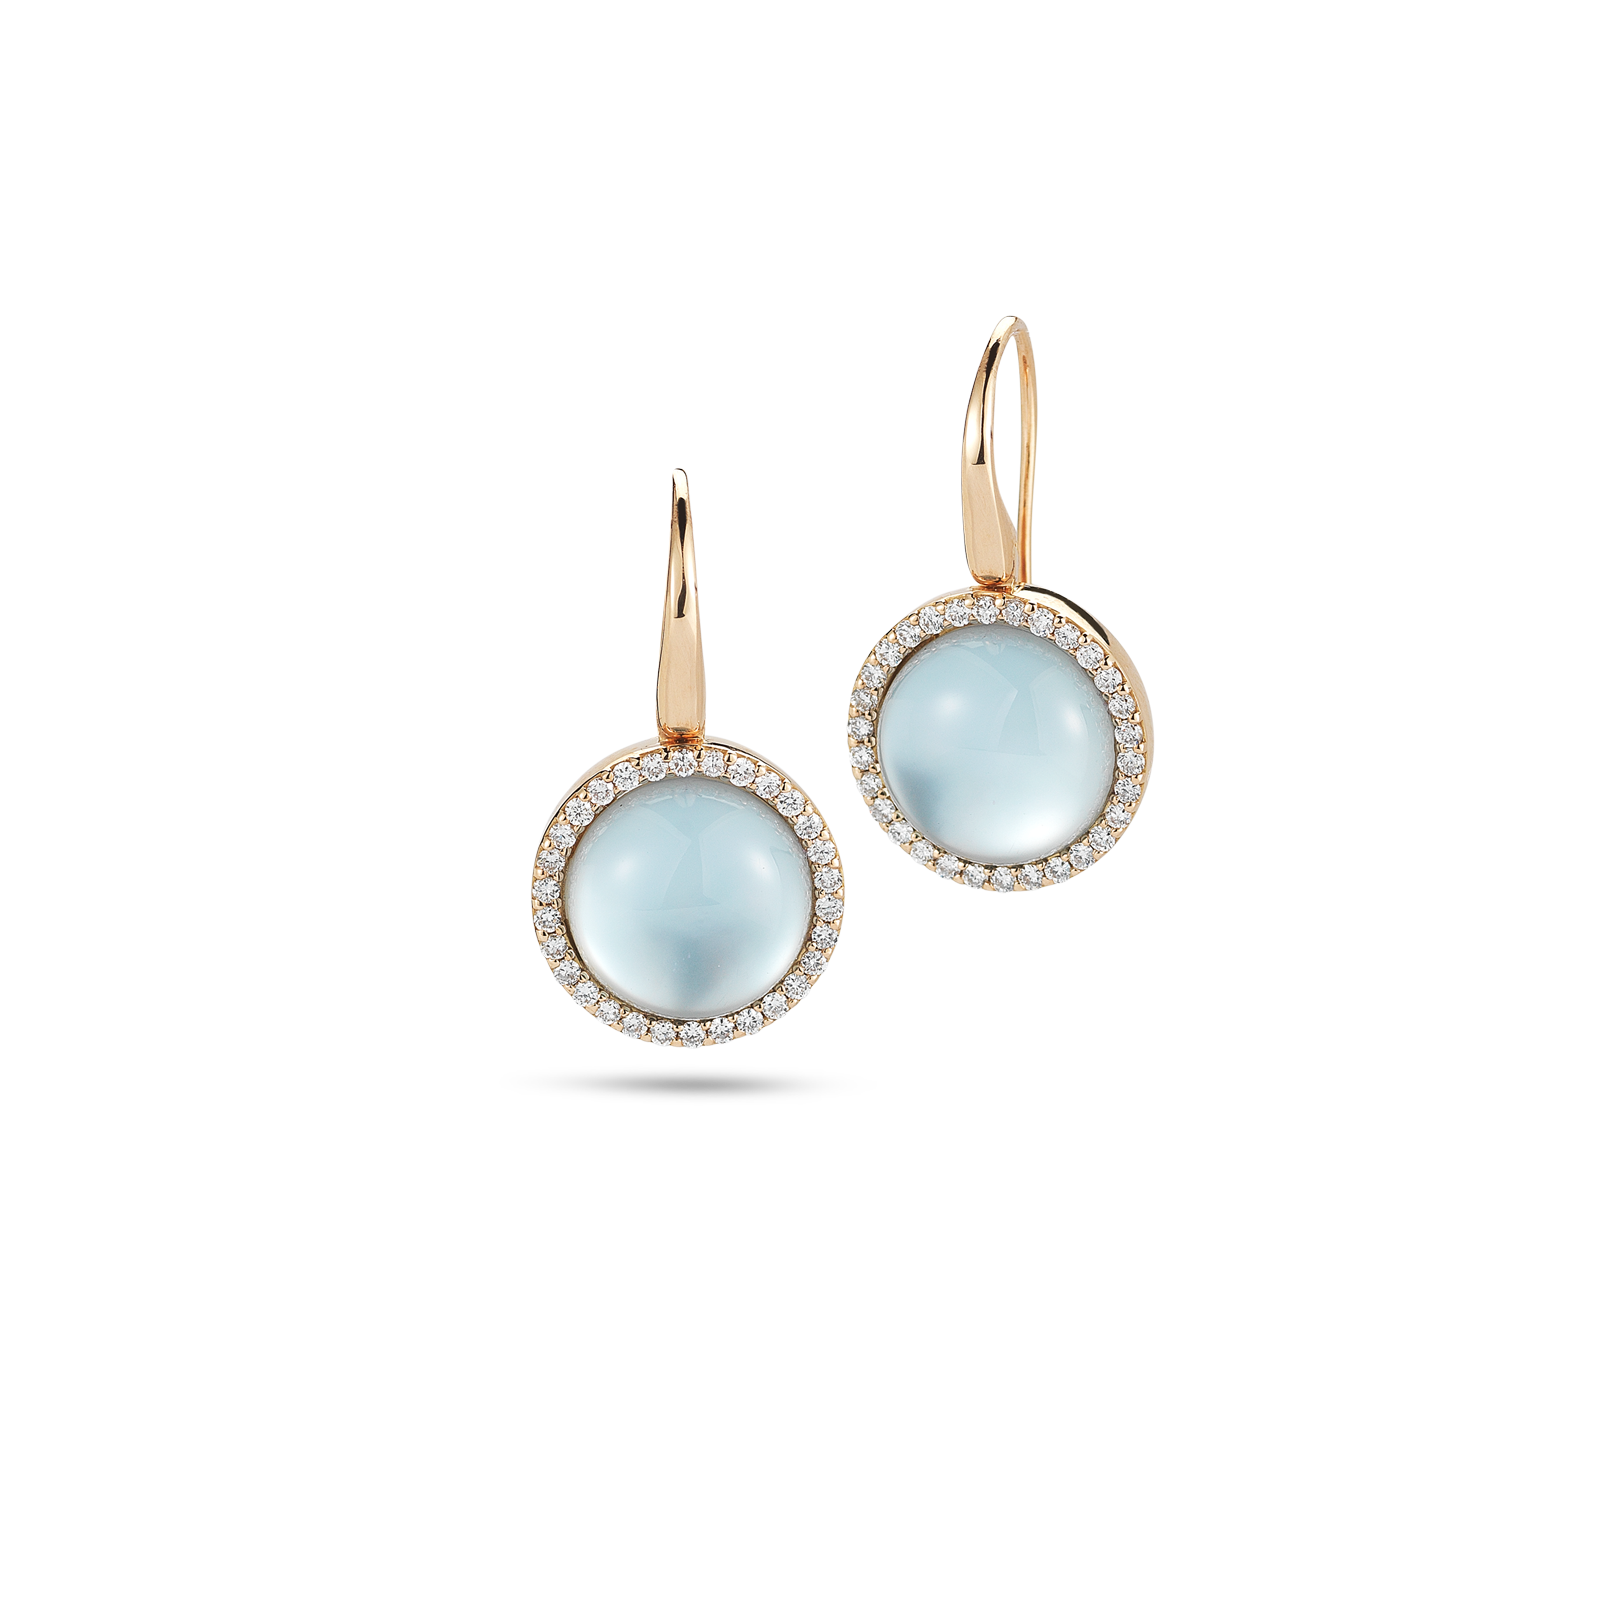 Cocktailearrings With Diamonds, Topaz And Mother Of Pearl